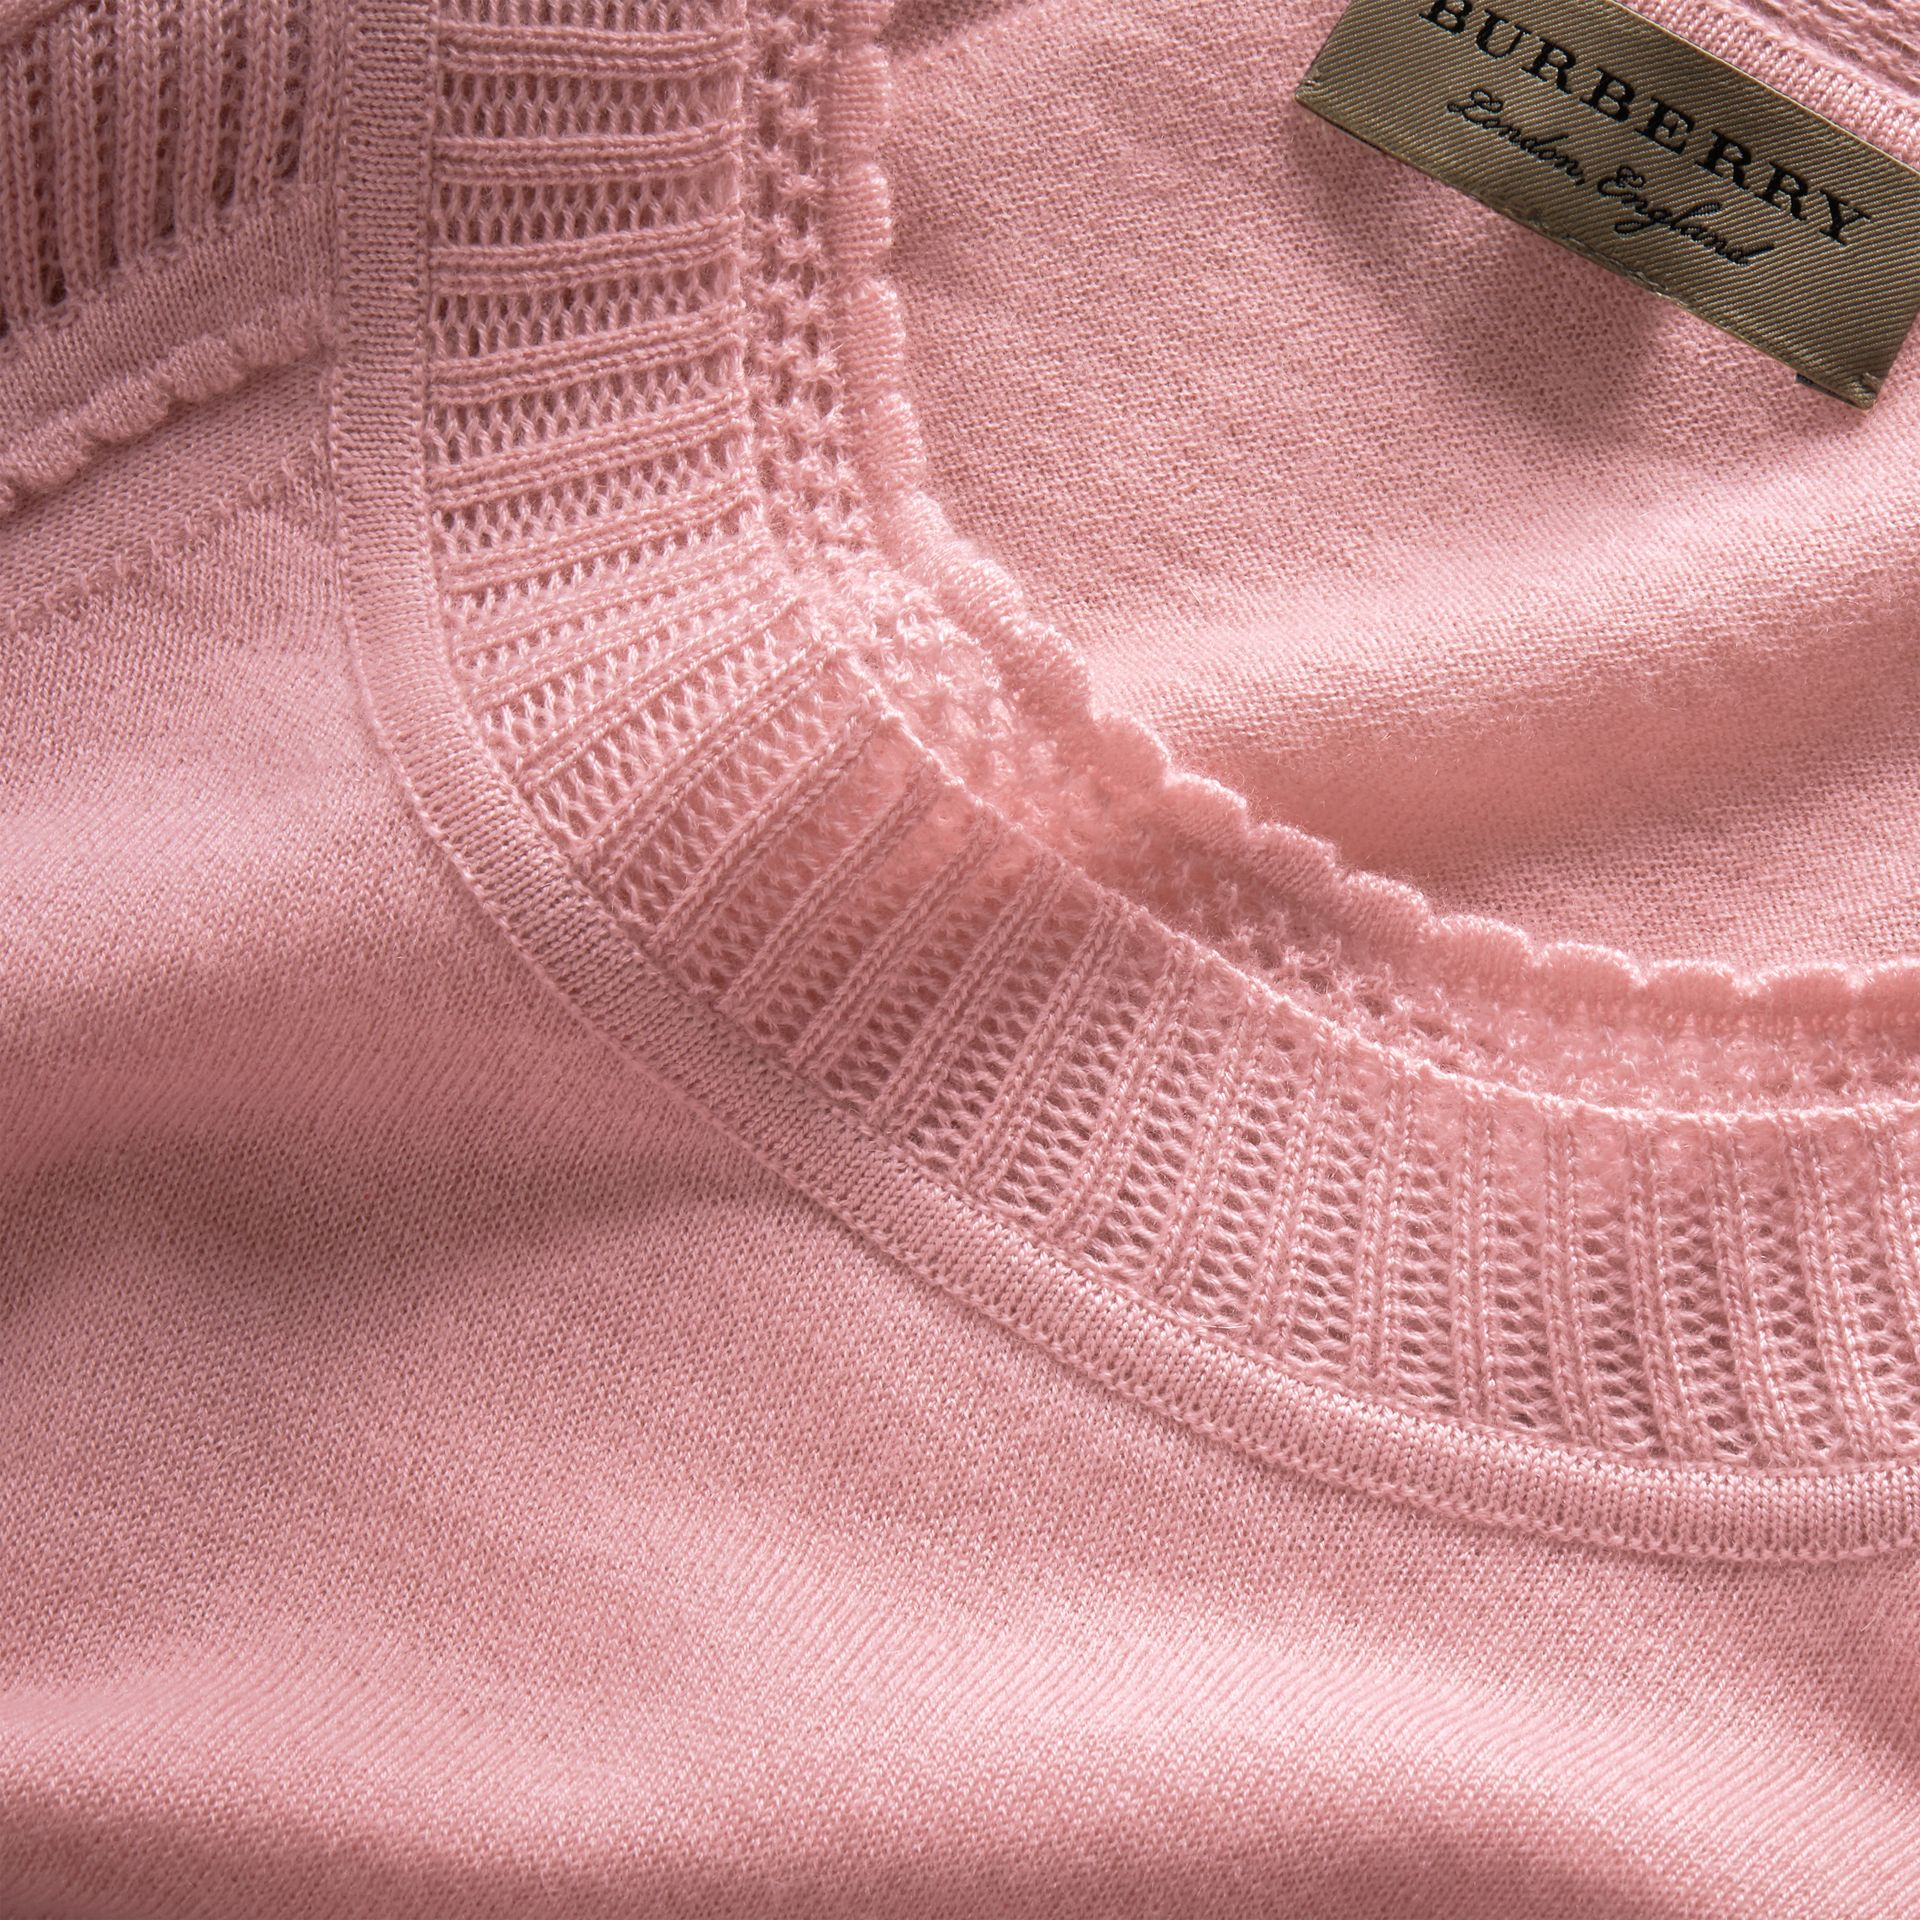 Open-knit Detail Cashmere Crew Neck Sweater in Apricot Pink - Women | Burberry Singapore - gallery image 2